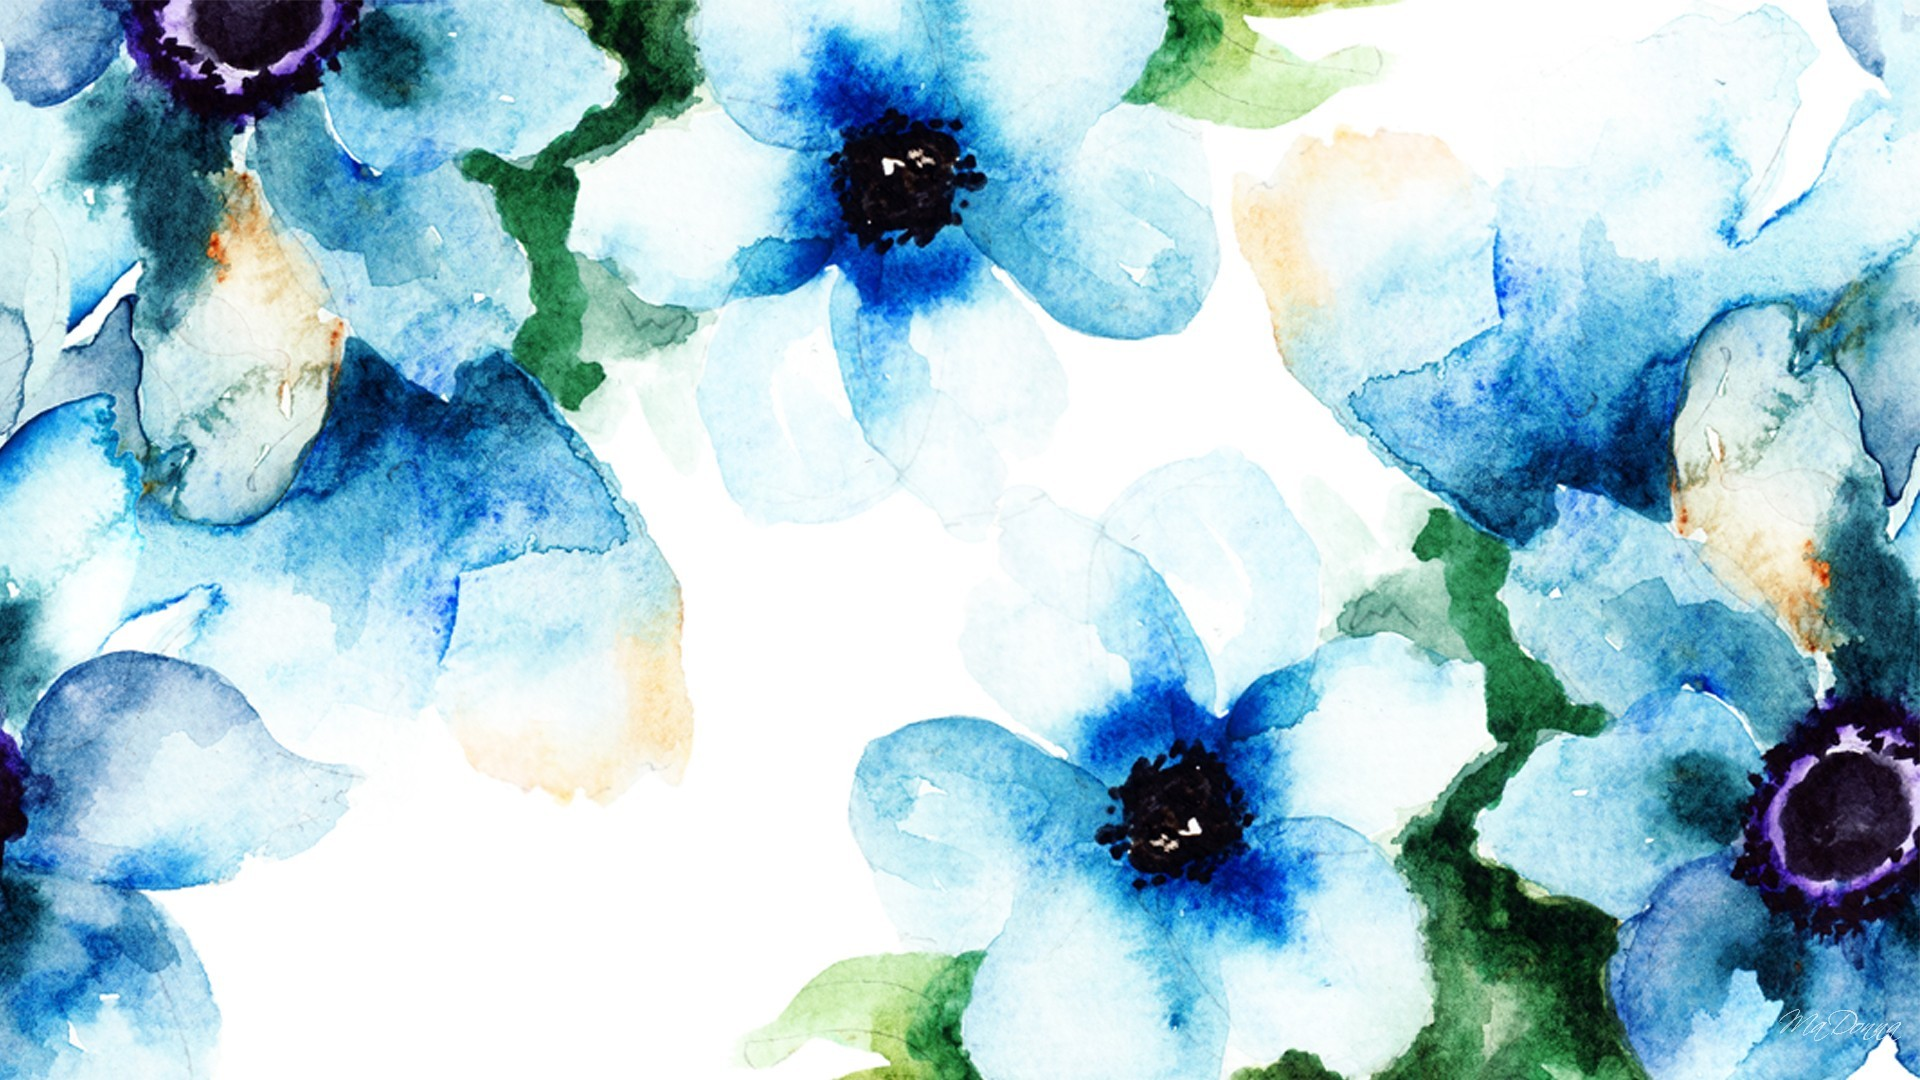 Watercolor Backgrounds Download Free Cool Hd Wallpapers Watercolor Pretty Desktop Backgrounds 1920x1080 Download Hd Wallpaper Wallpapertip